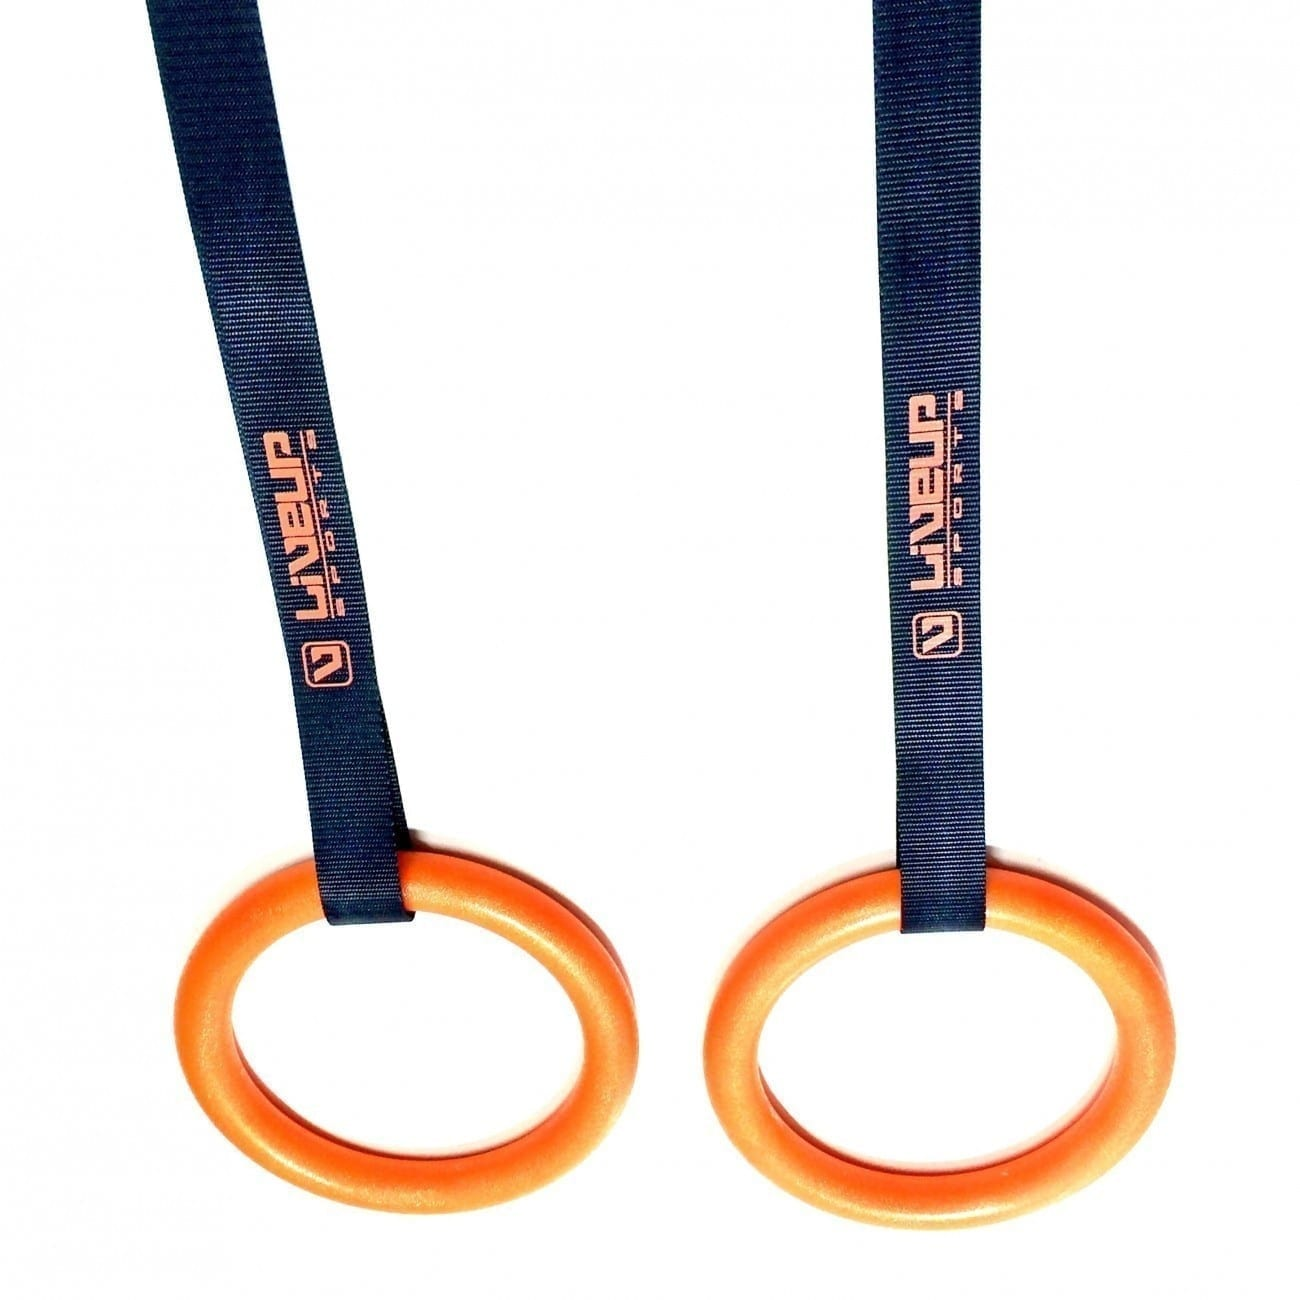 Gymnastics Rings From Liveup LS3675